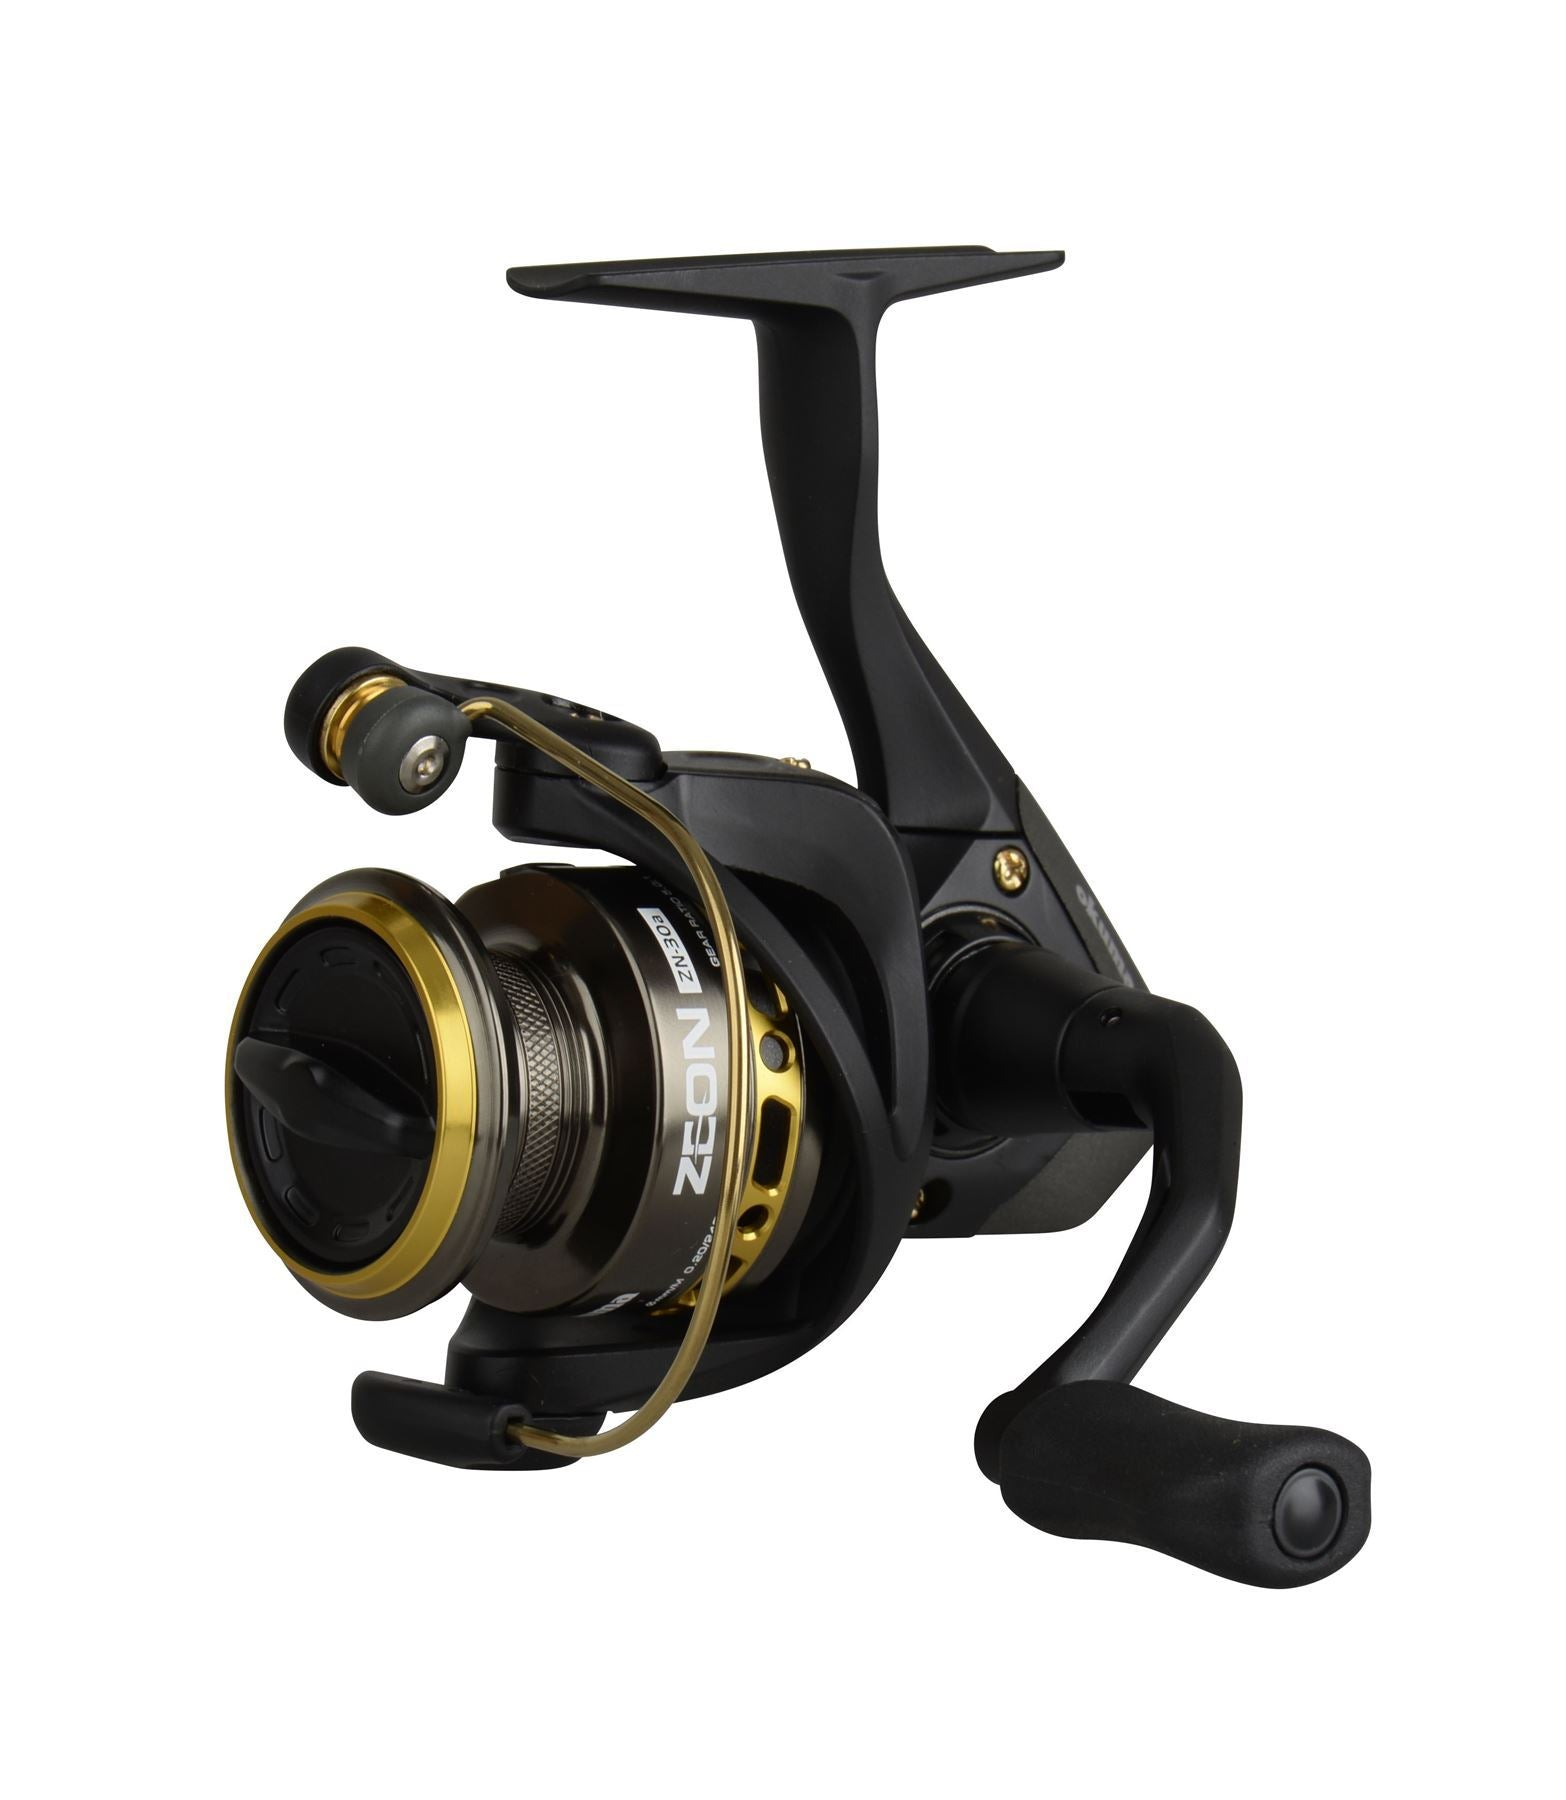 Okuma Zeon ZN-30FD 3+1bb Inc. Graphite Spare spool Spinning Reel - reid outdoors